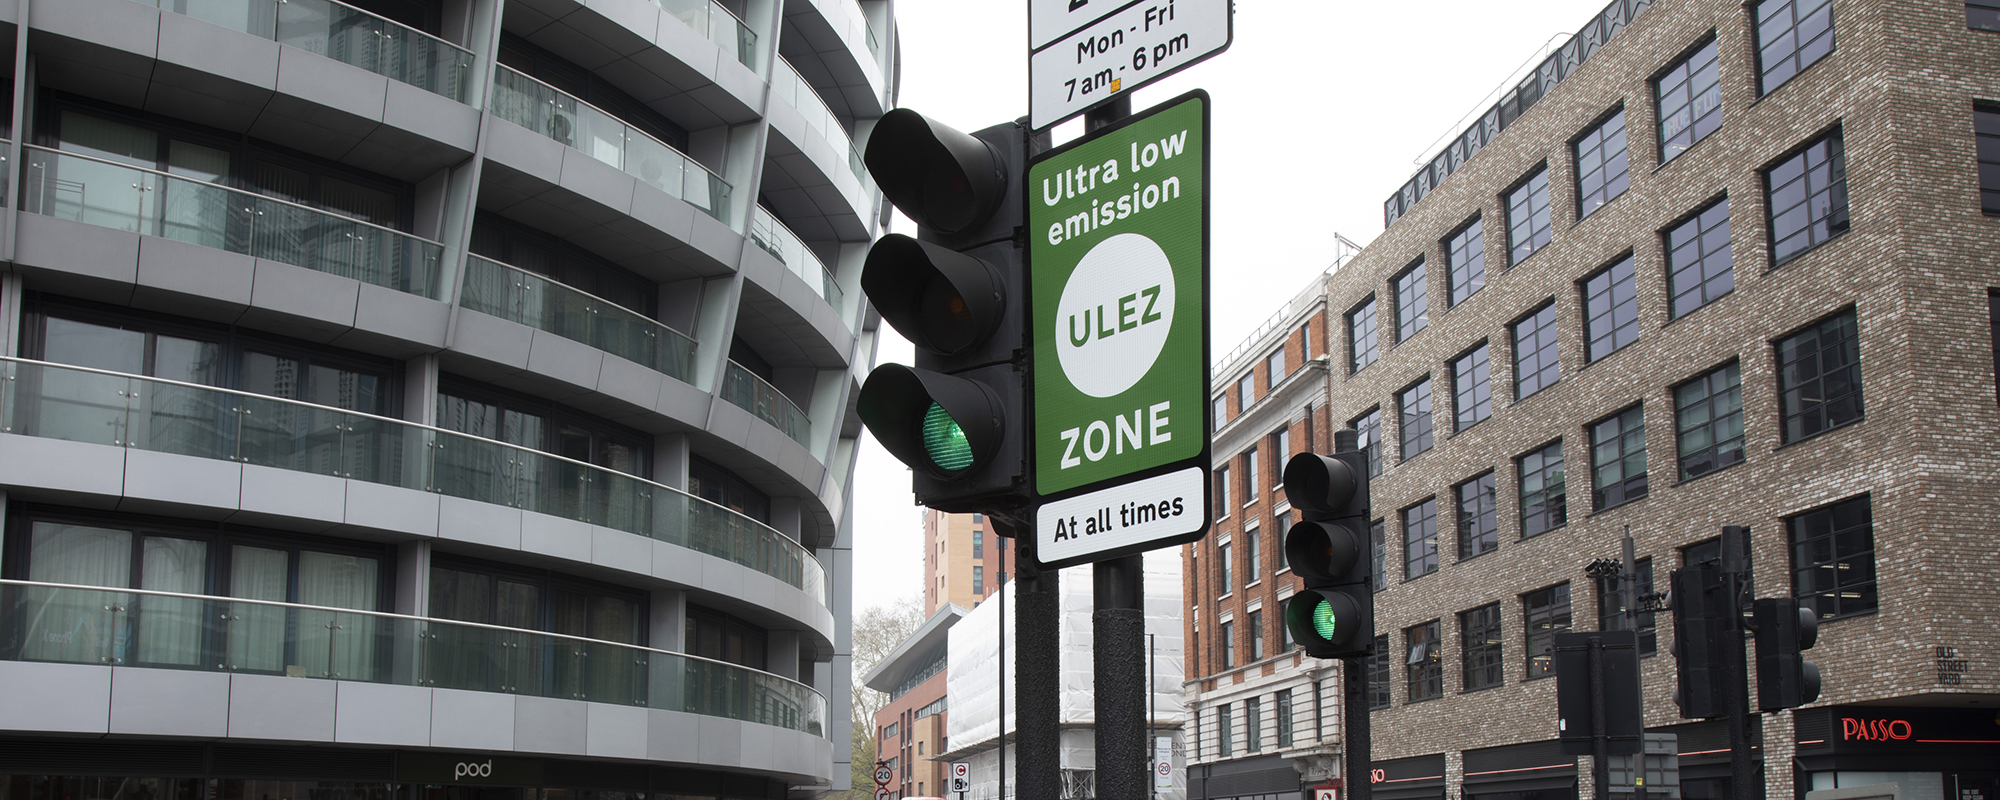 ULEZ is working: How London's Ultra Low Emission Zone is changing travel behaviours